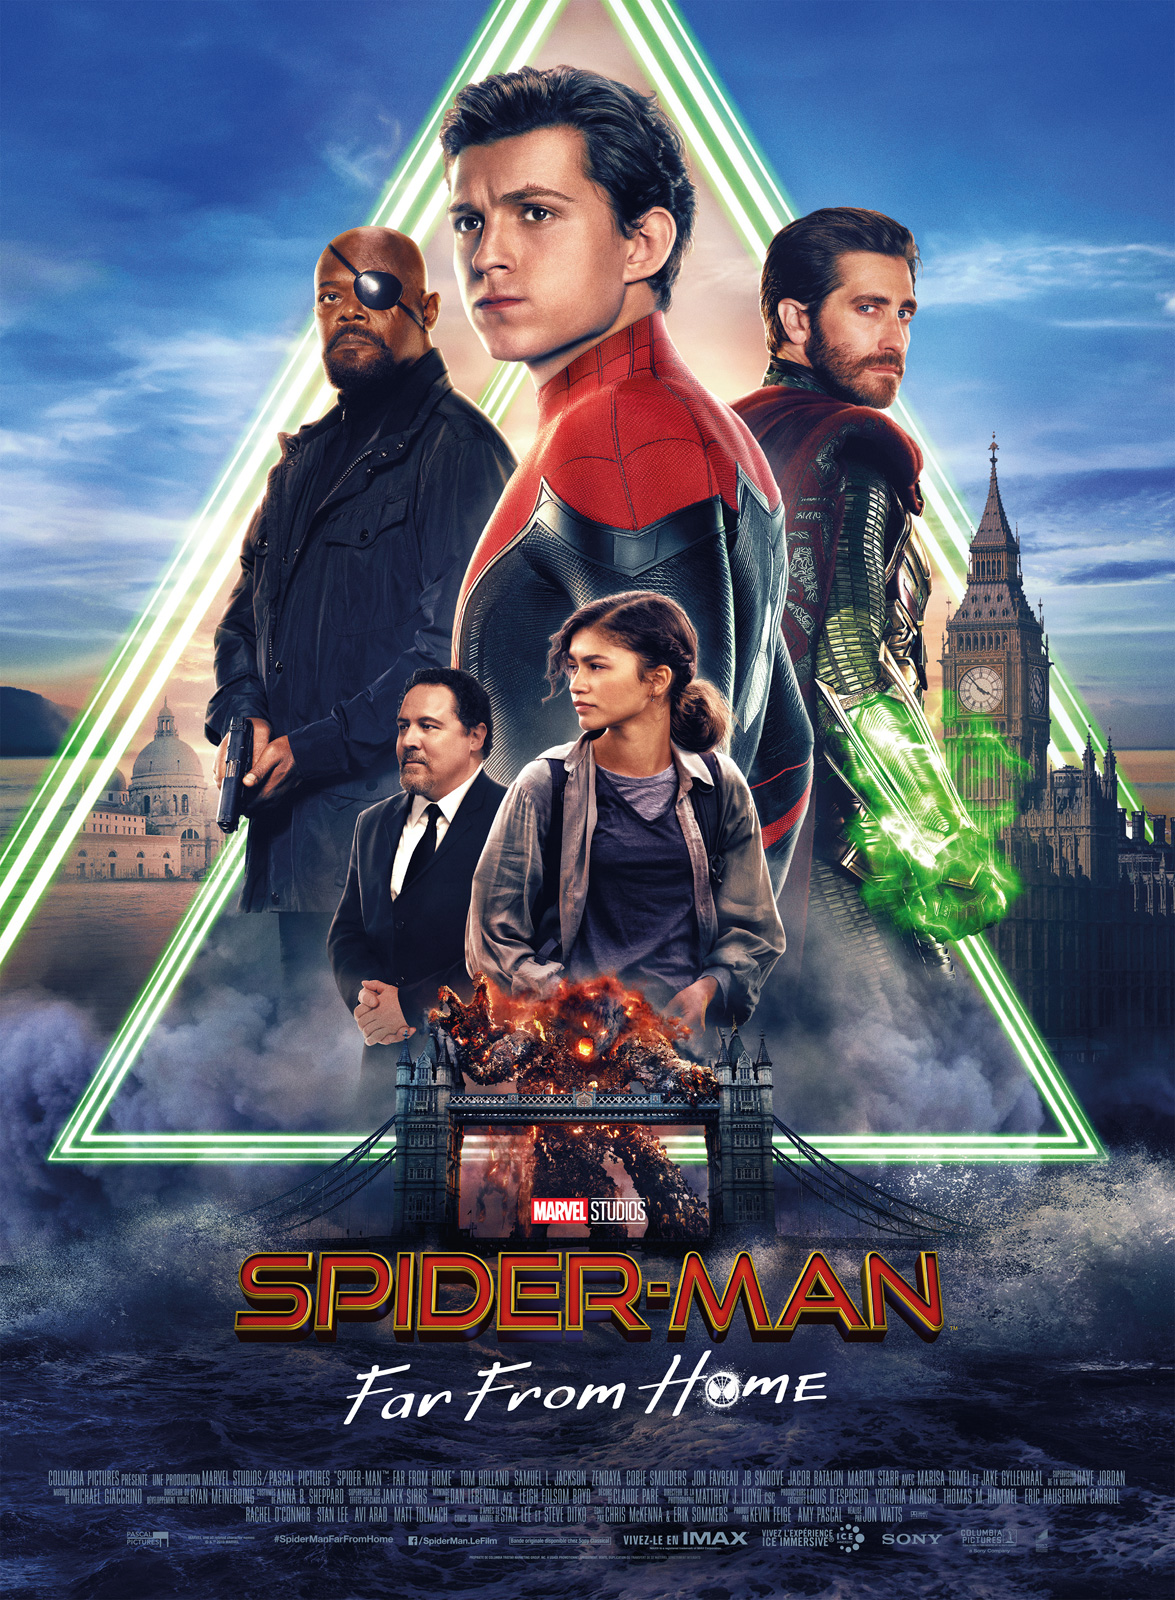 Spider-Man: Far from Home - DvdToile